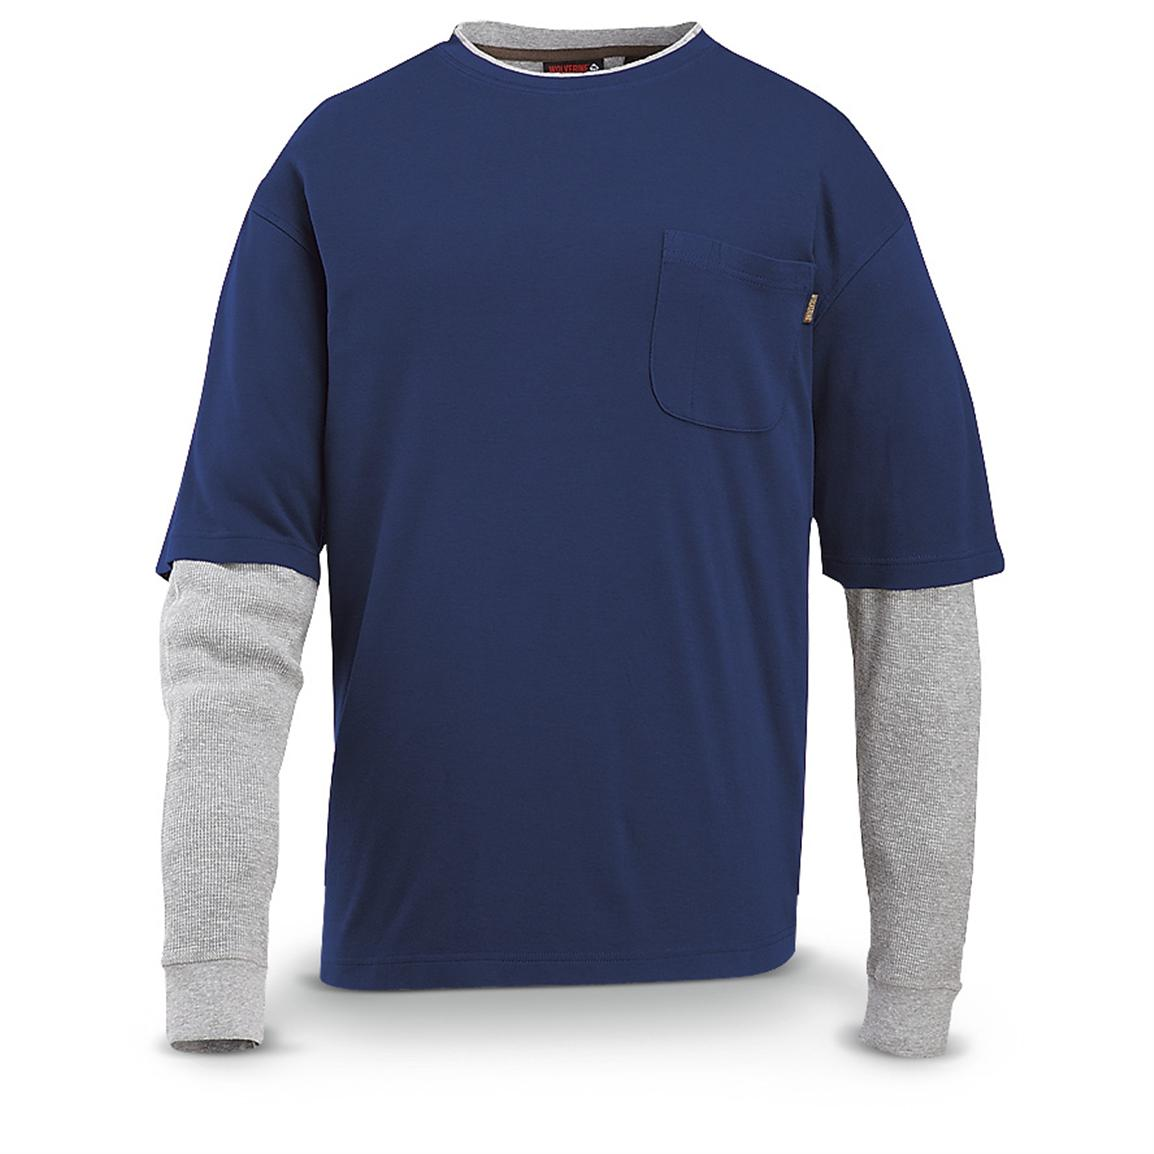 Wolverine® Long-sleeved Miter T-shirt, Navy